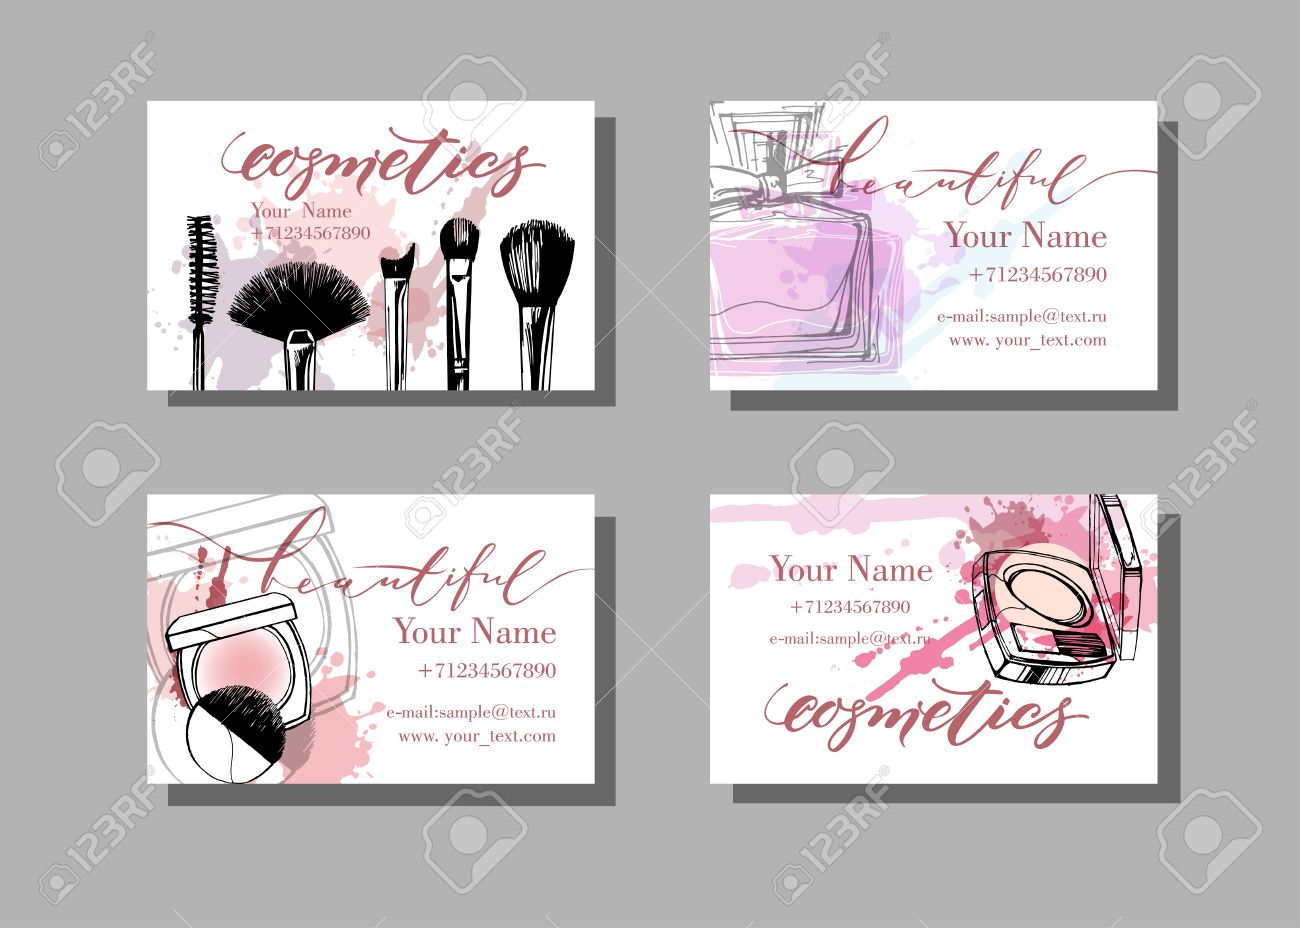 Makeup artist business card vector template with makeup items makeup artist business card vector template with makeup items pattern fashion and beauty background cheaphphosting Image collections